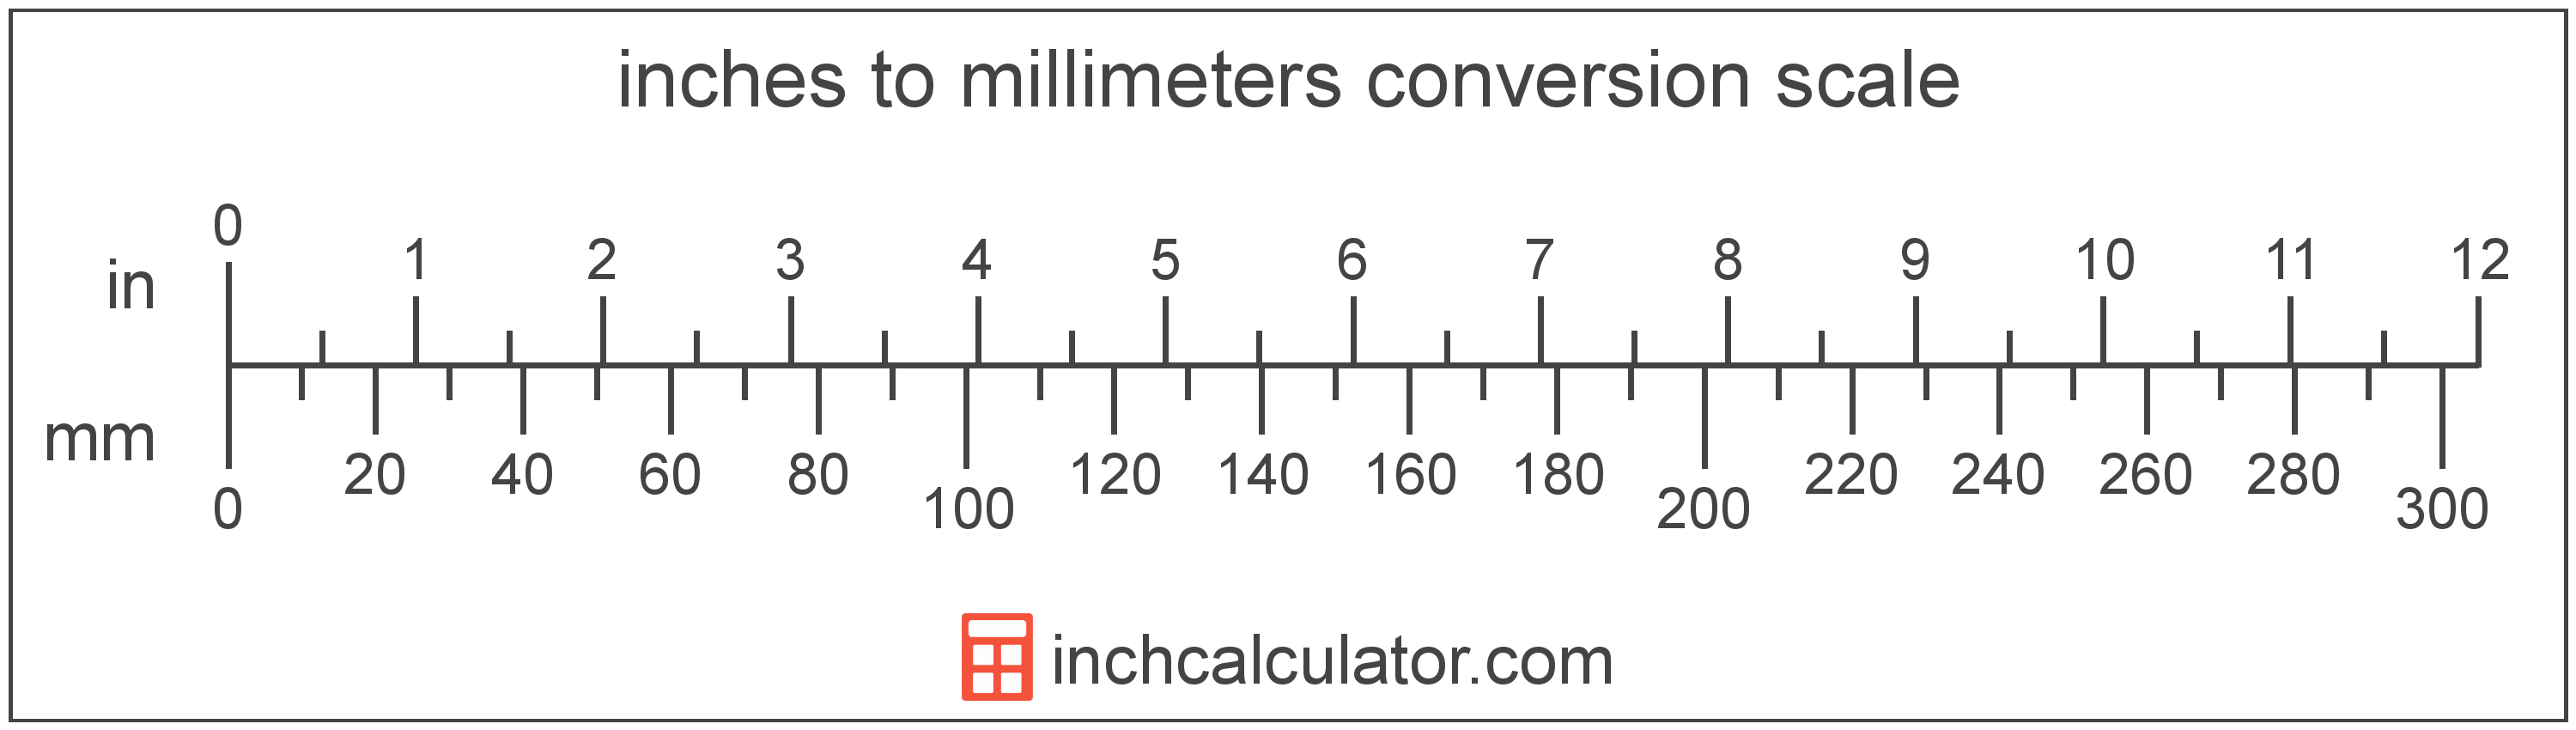 Convert Centimeters To Millimeters Cm To Mm